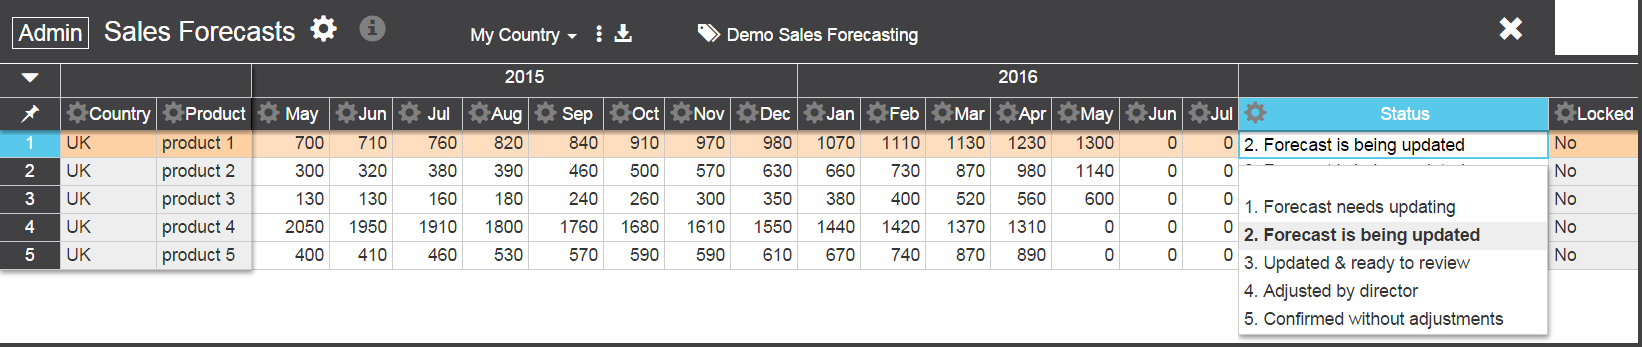 sales forecasting uk